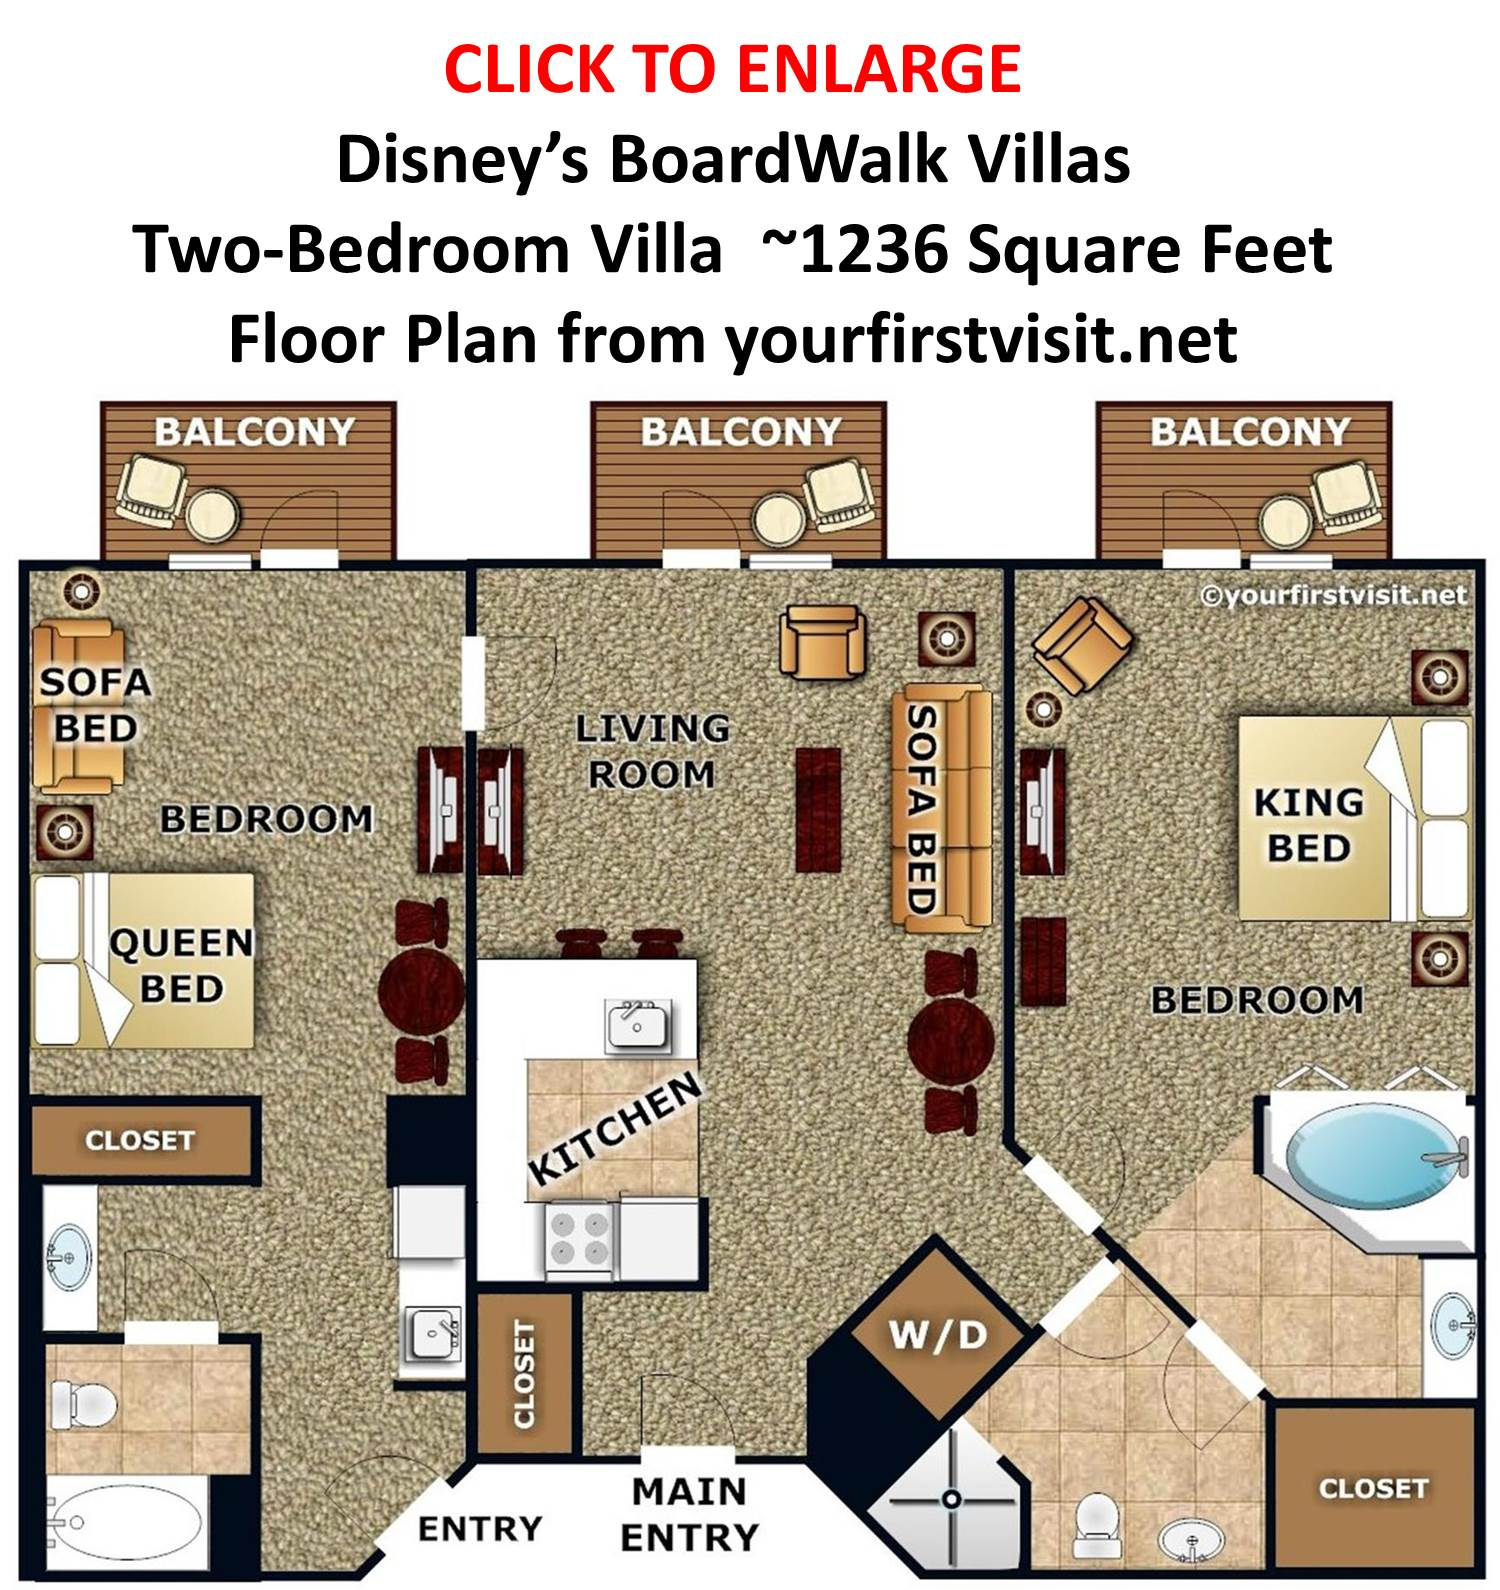 disney 39 s boardwalk villas two bedroom villa floor plan On boardwalk villas 2 bedroom